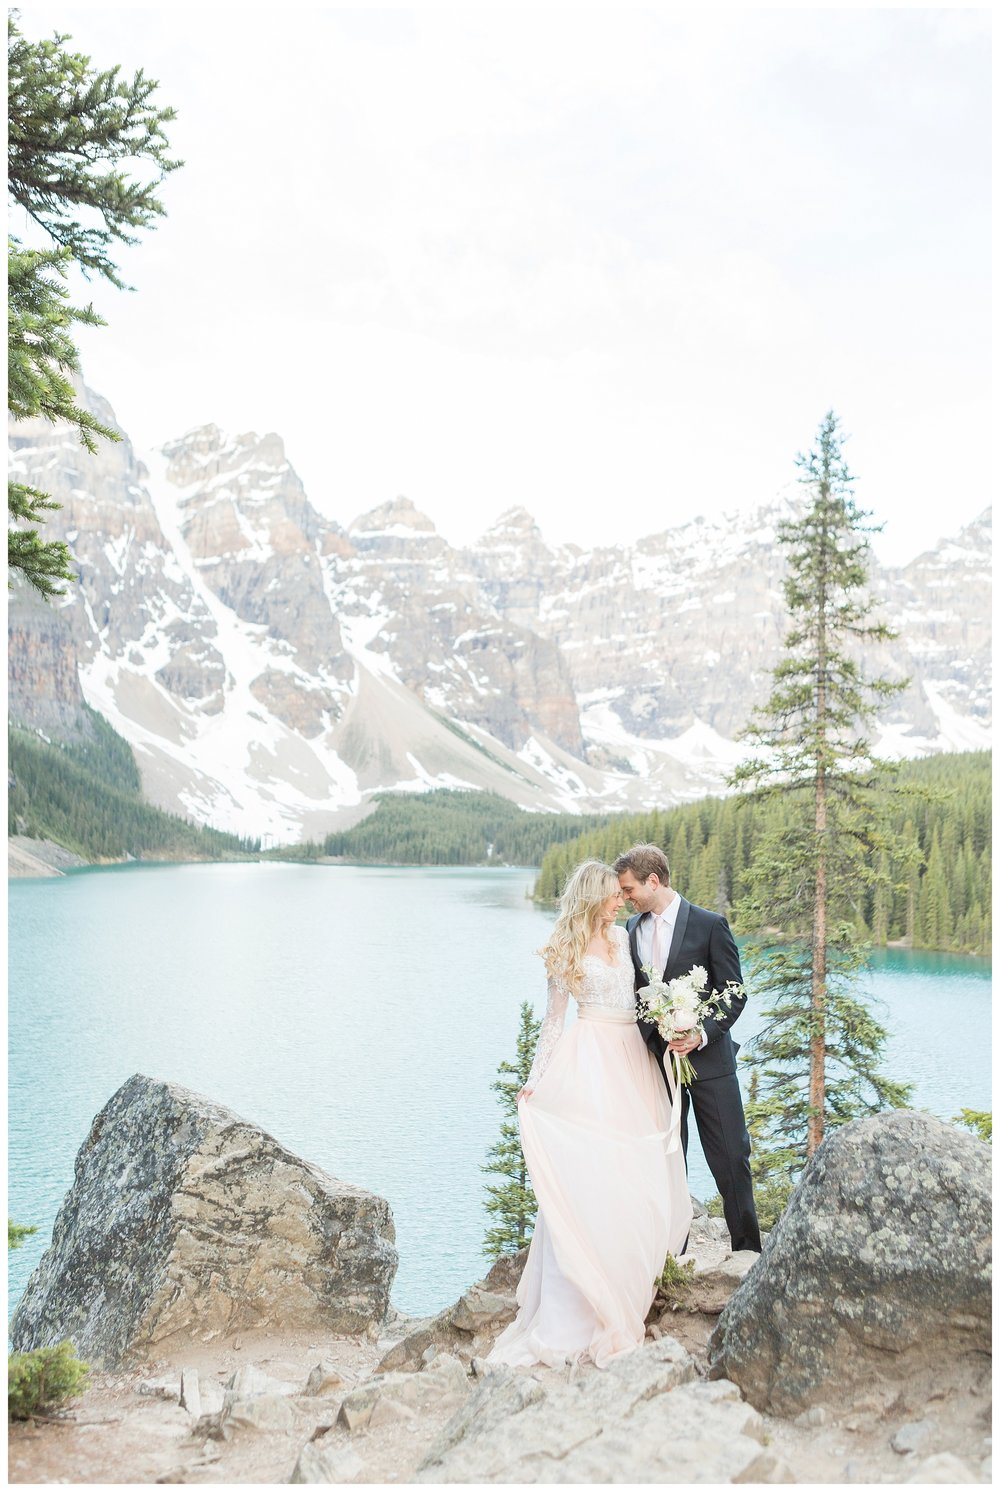 Moraine_Lake_Wedding_0021.jpg